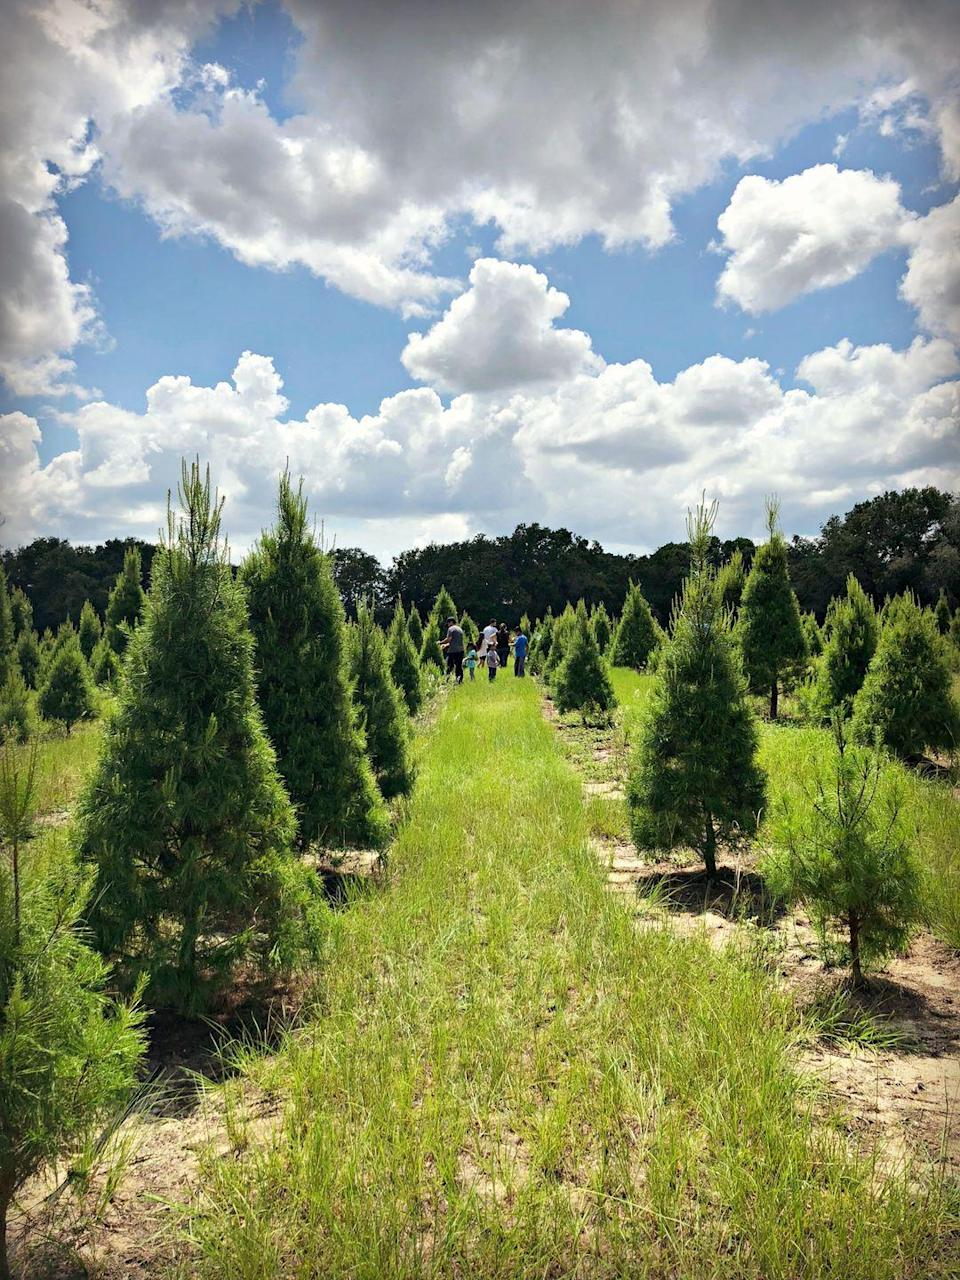 """<p><strong>Eustis, Florida</strong> (Starting November 23)</p><p>St. Nick's Winter Wonderland is a kid's (or kid-at-heart's) dream. Complete with horse rides, a zip line, and rubber duck race (among other activities), you'll never be bored in <strong><a href=""""http://www.santaschristmastreeforest.com/hours-and-info"""" rel=""""nofollow noopener"""" target=""""_blank"""" data-ylk=""""slk:Santa's Christmas Tree Forest"""" class=""""link rapid-noclick-resp"""">Santa's Christmas Tree Forest</a></strong>. Before you get too worn out, don't forget to cut your very own live tree. </p>"""